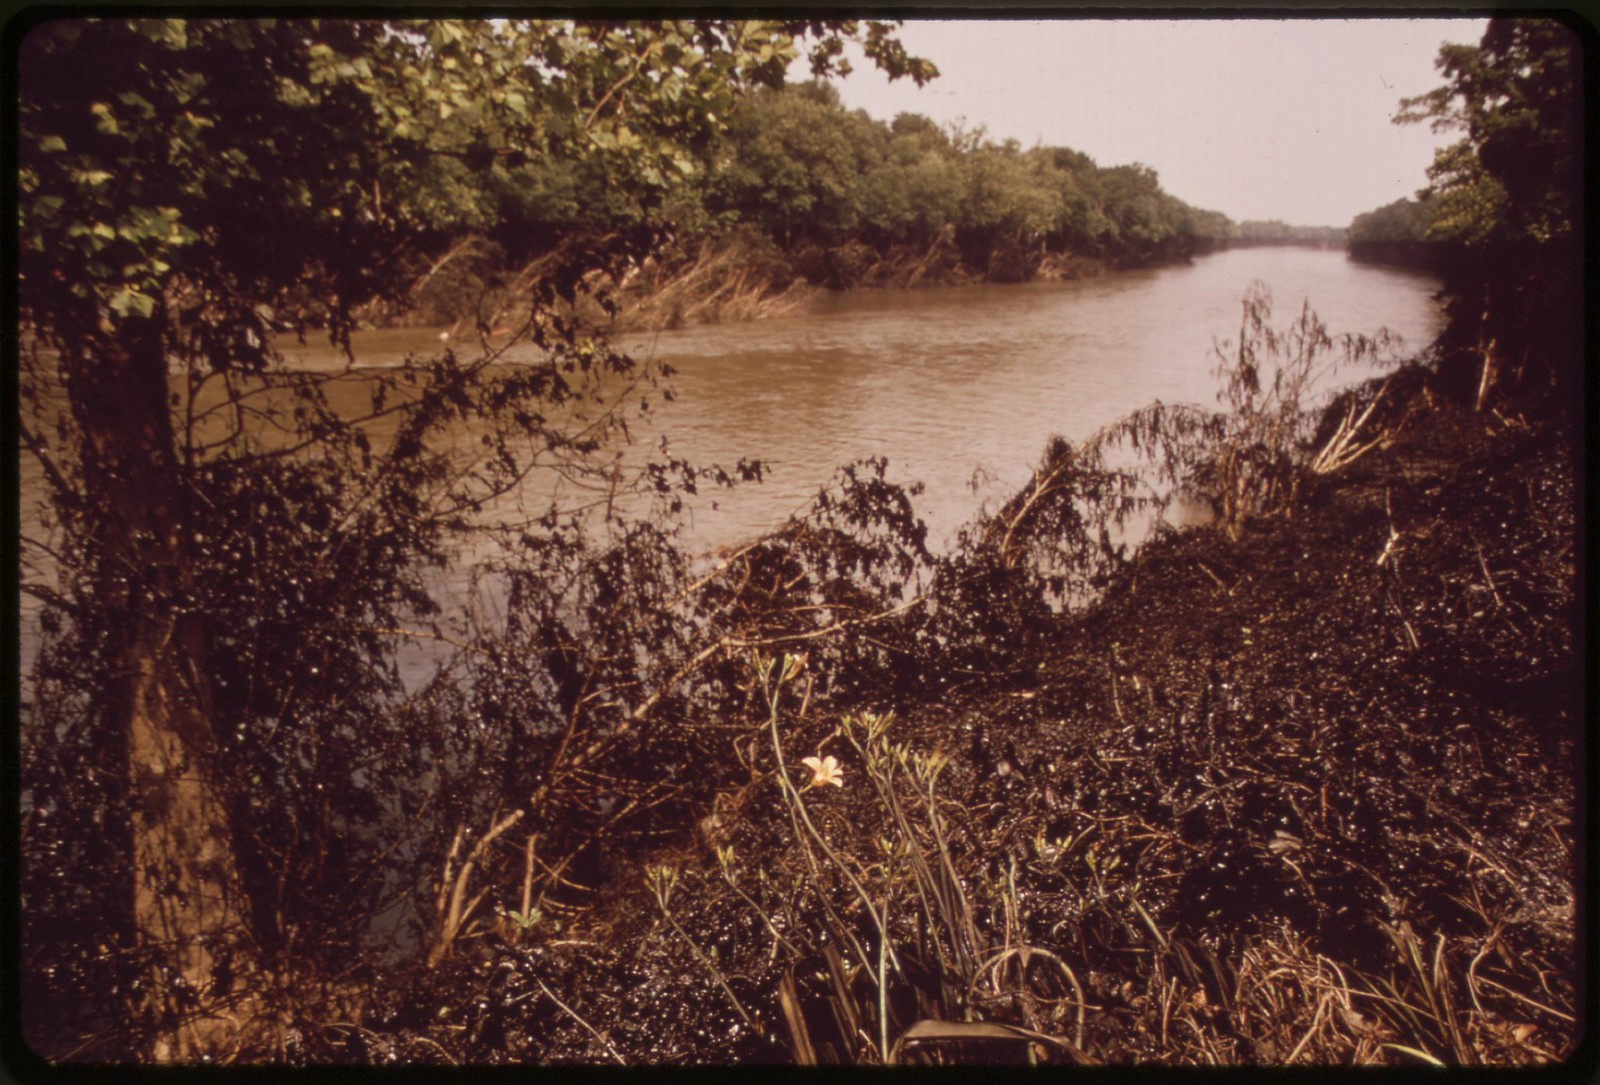 Oil Spill On Schuykill River, July 1972 | by The U.S. National Archives